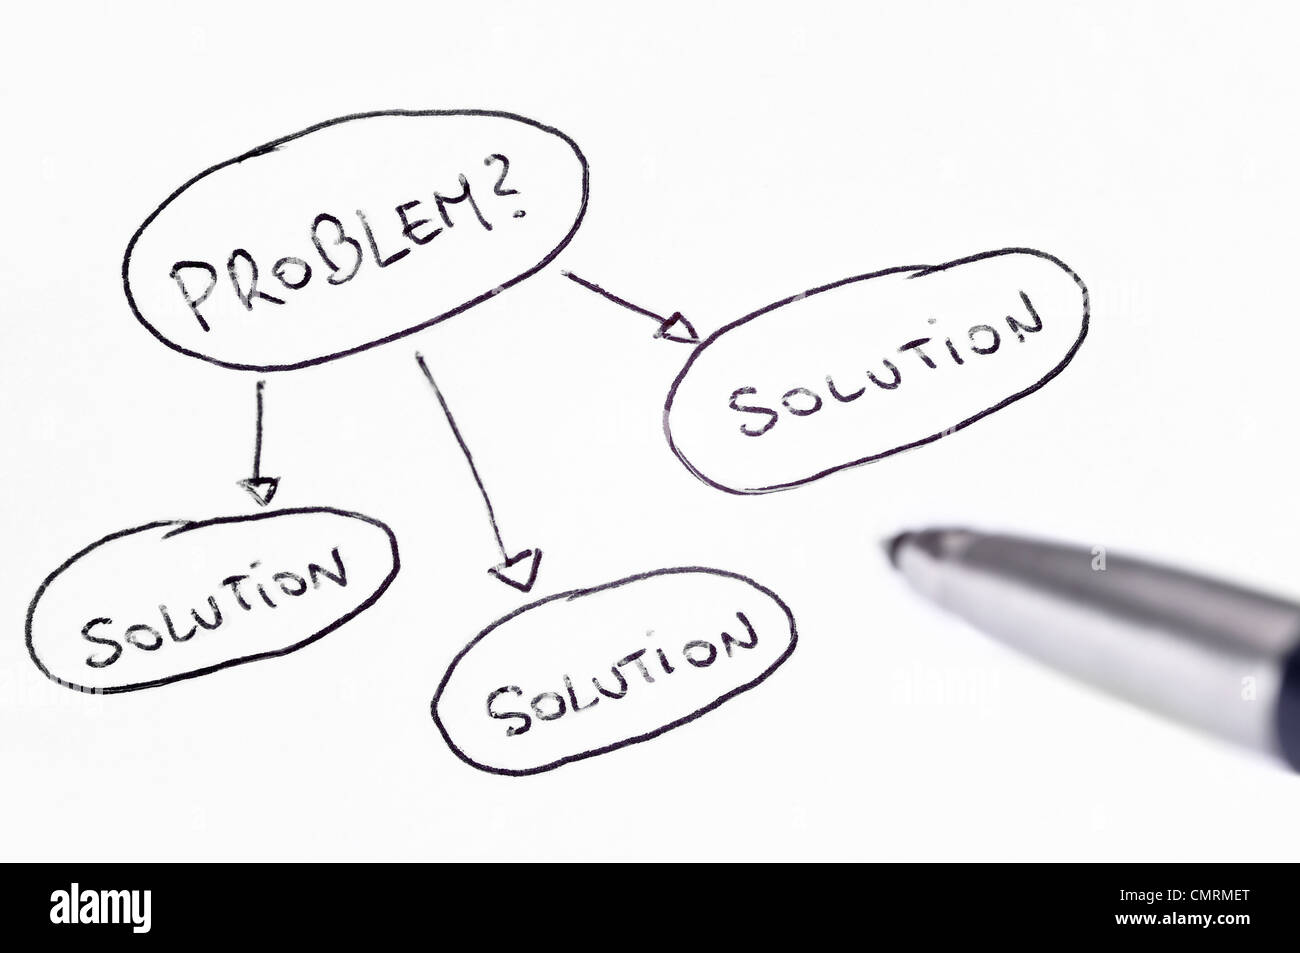 Problem and solution handwritten diagram with a pen at the side - Stock Image